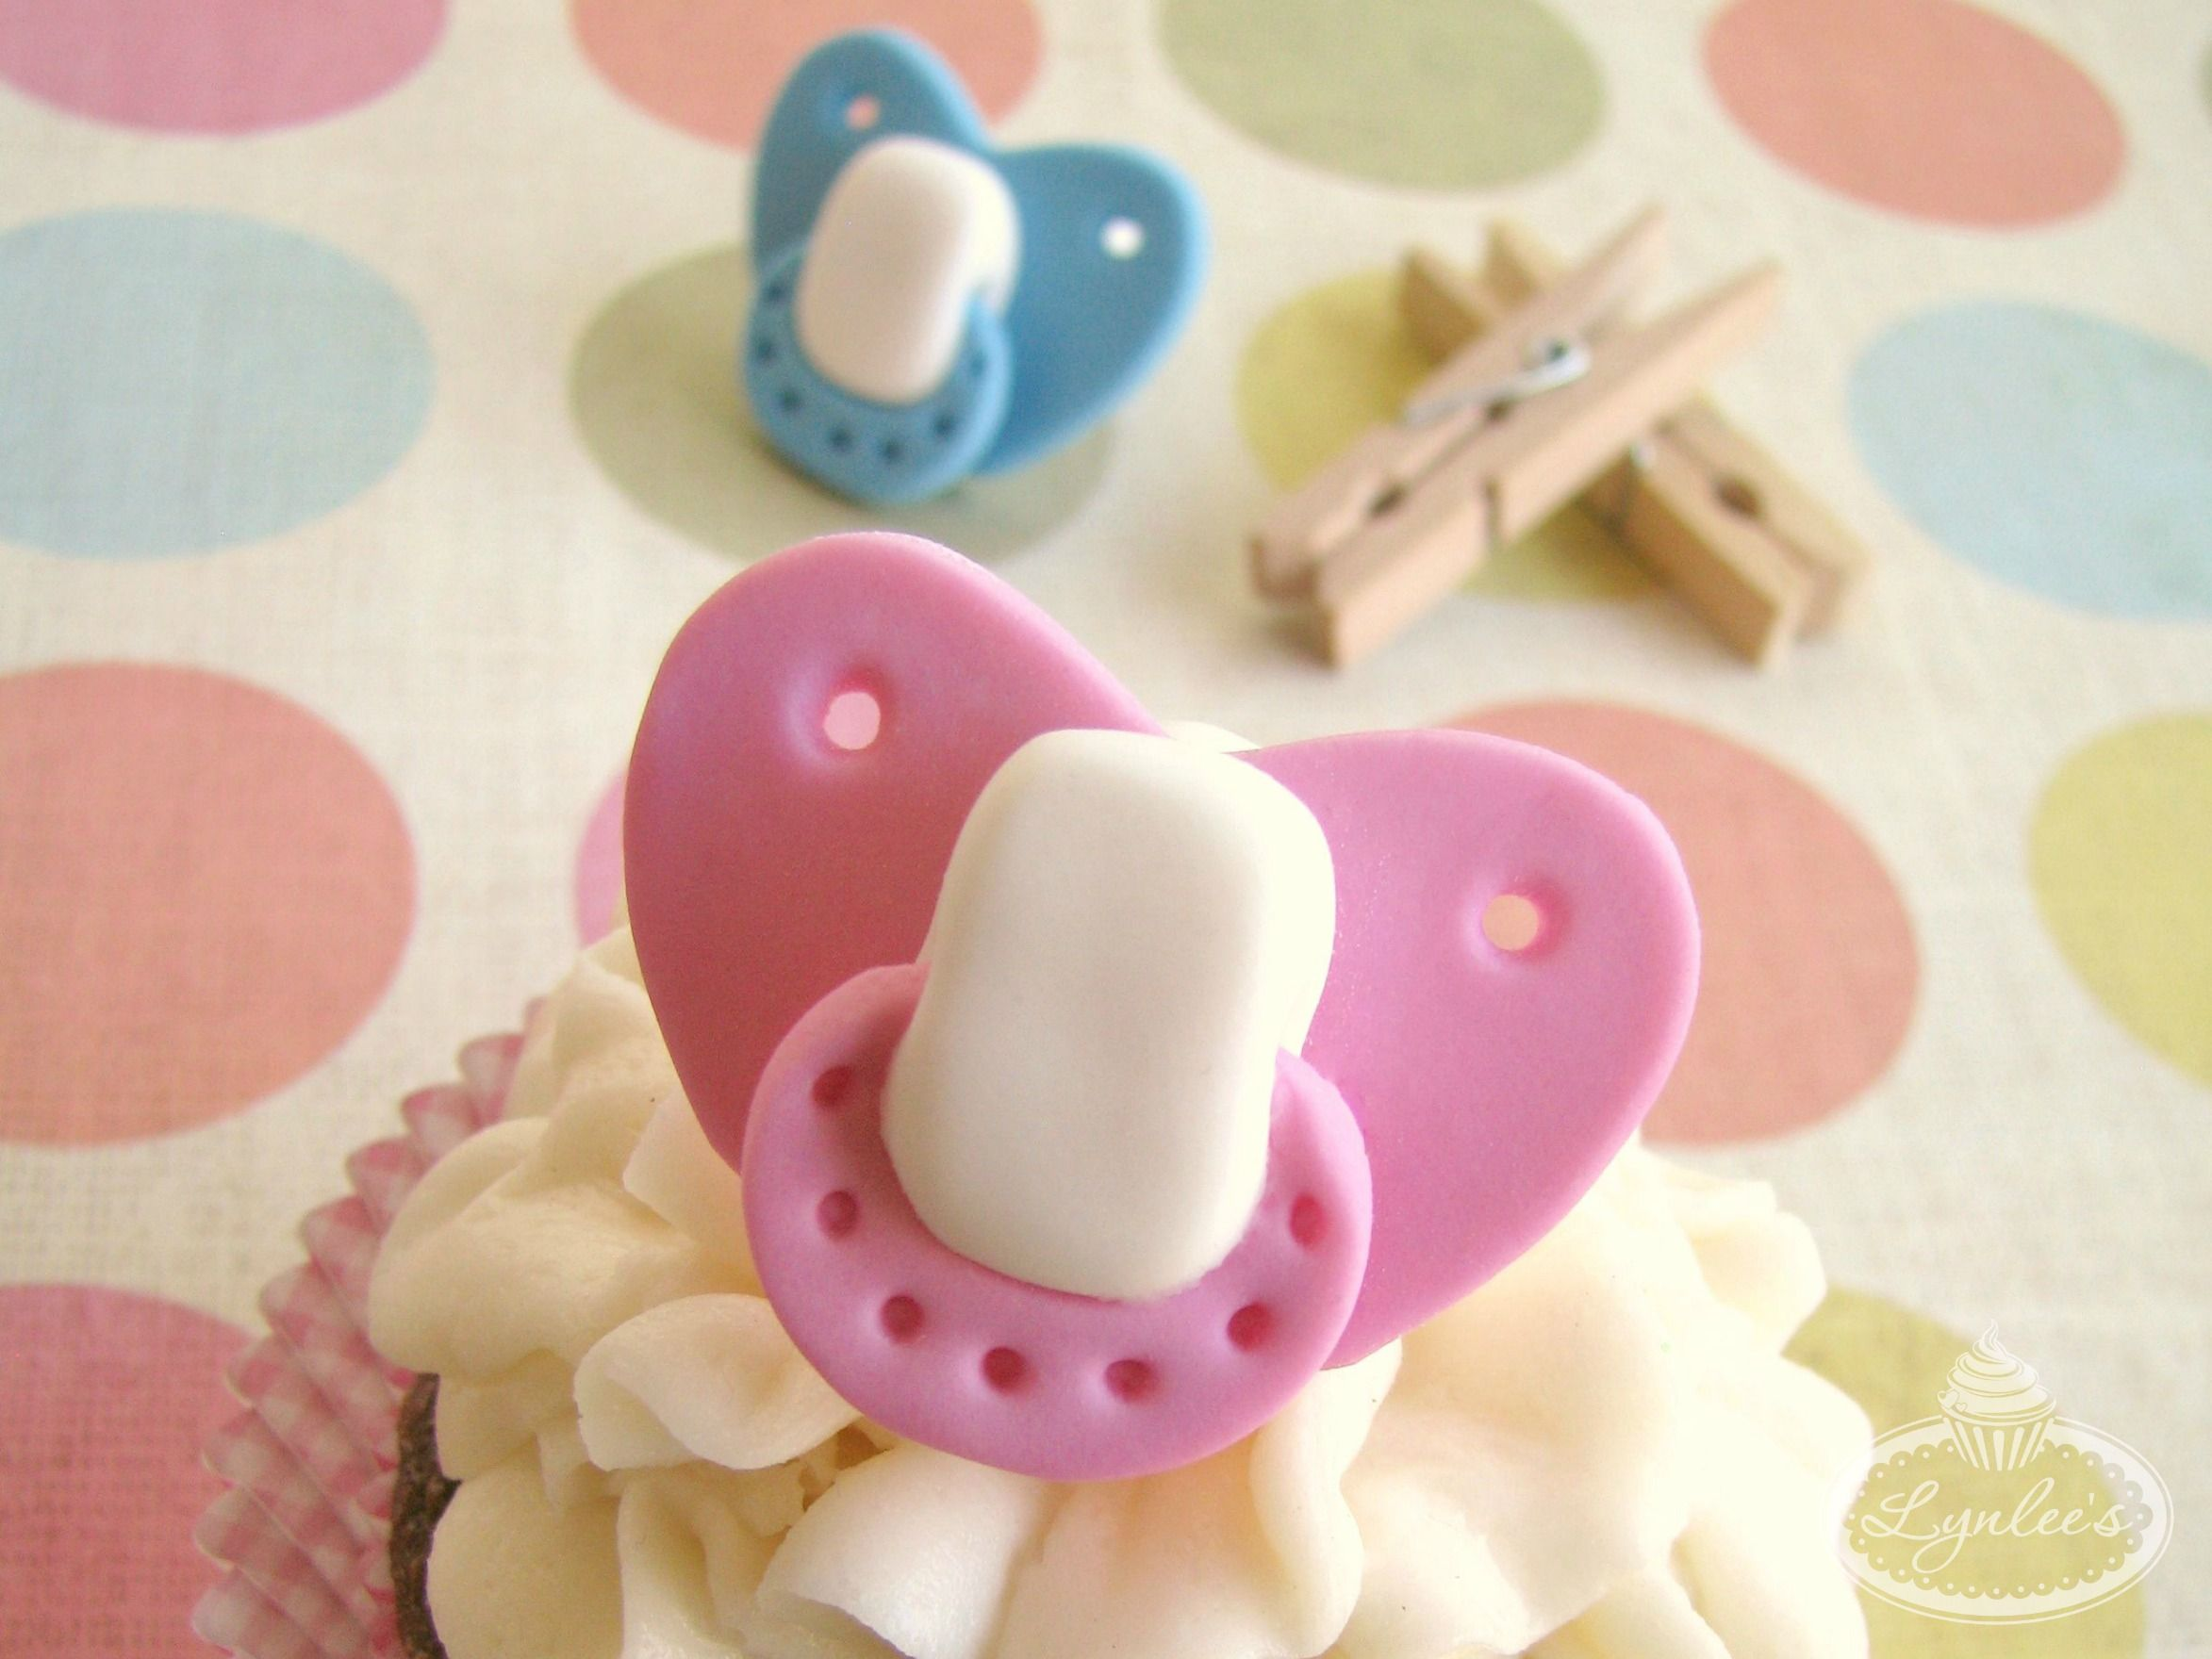 How To Prepare Fruit Cake For Fondant Icing